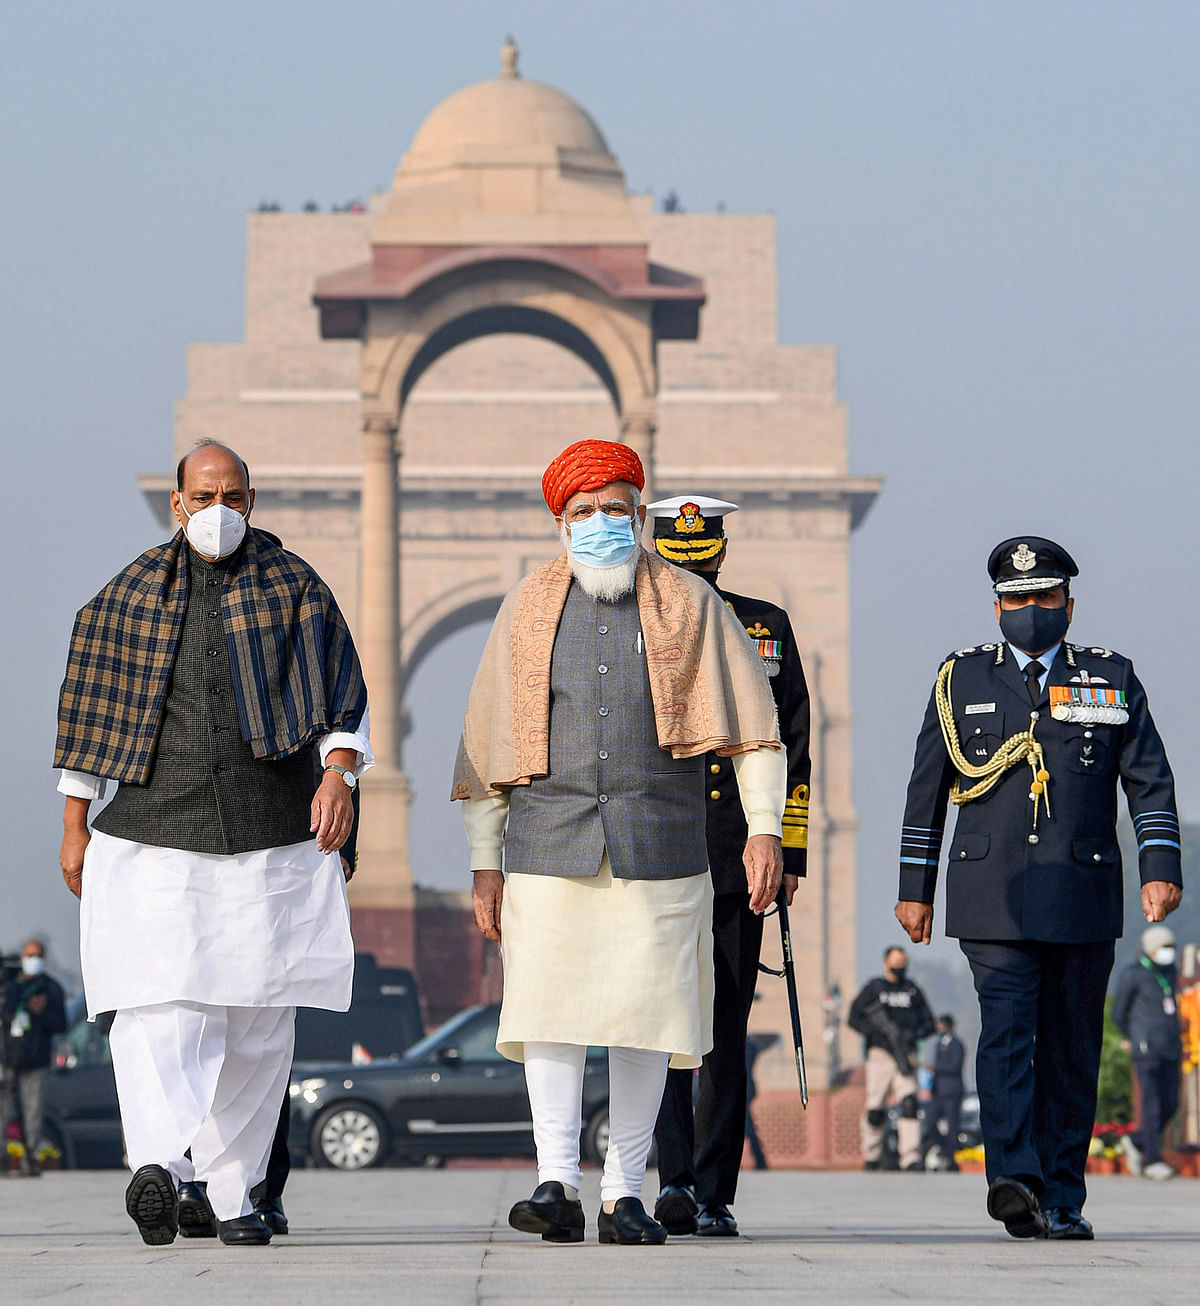 Prime Minister Narendra Modi and Defence Minister Rajnath Singh arrive at the National War Memorial, on the occasion of the 72nd Republic Day Parade 2021, in New Delhi, Tuesday, 26 January 2021.